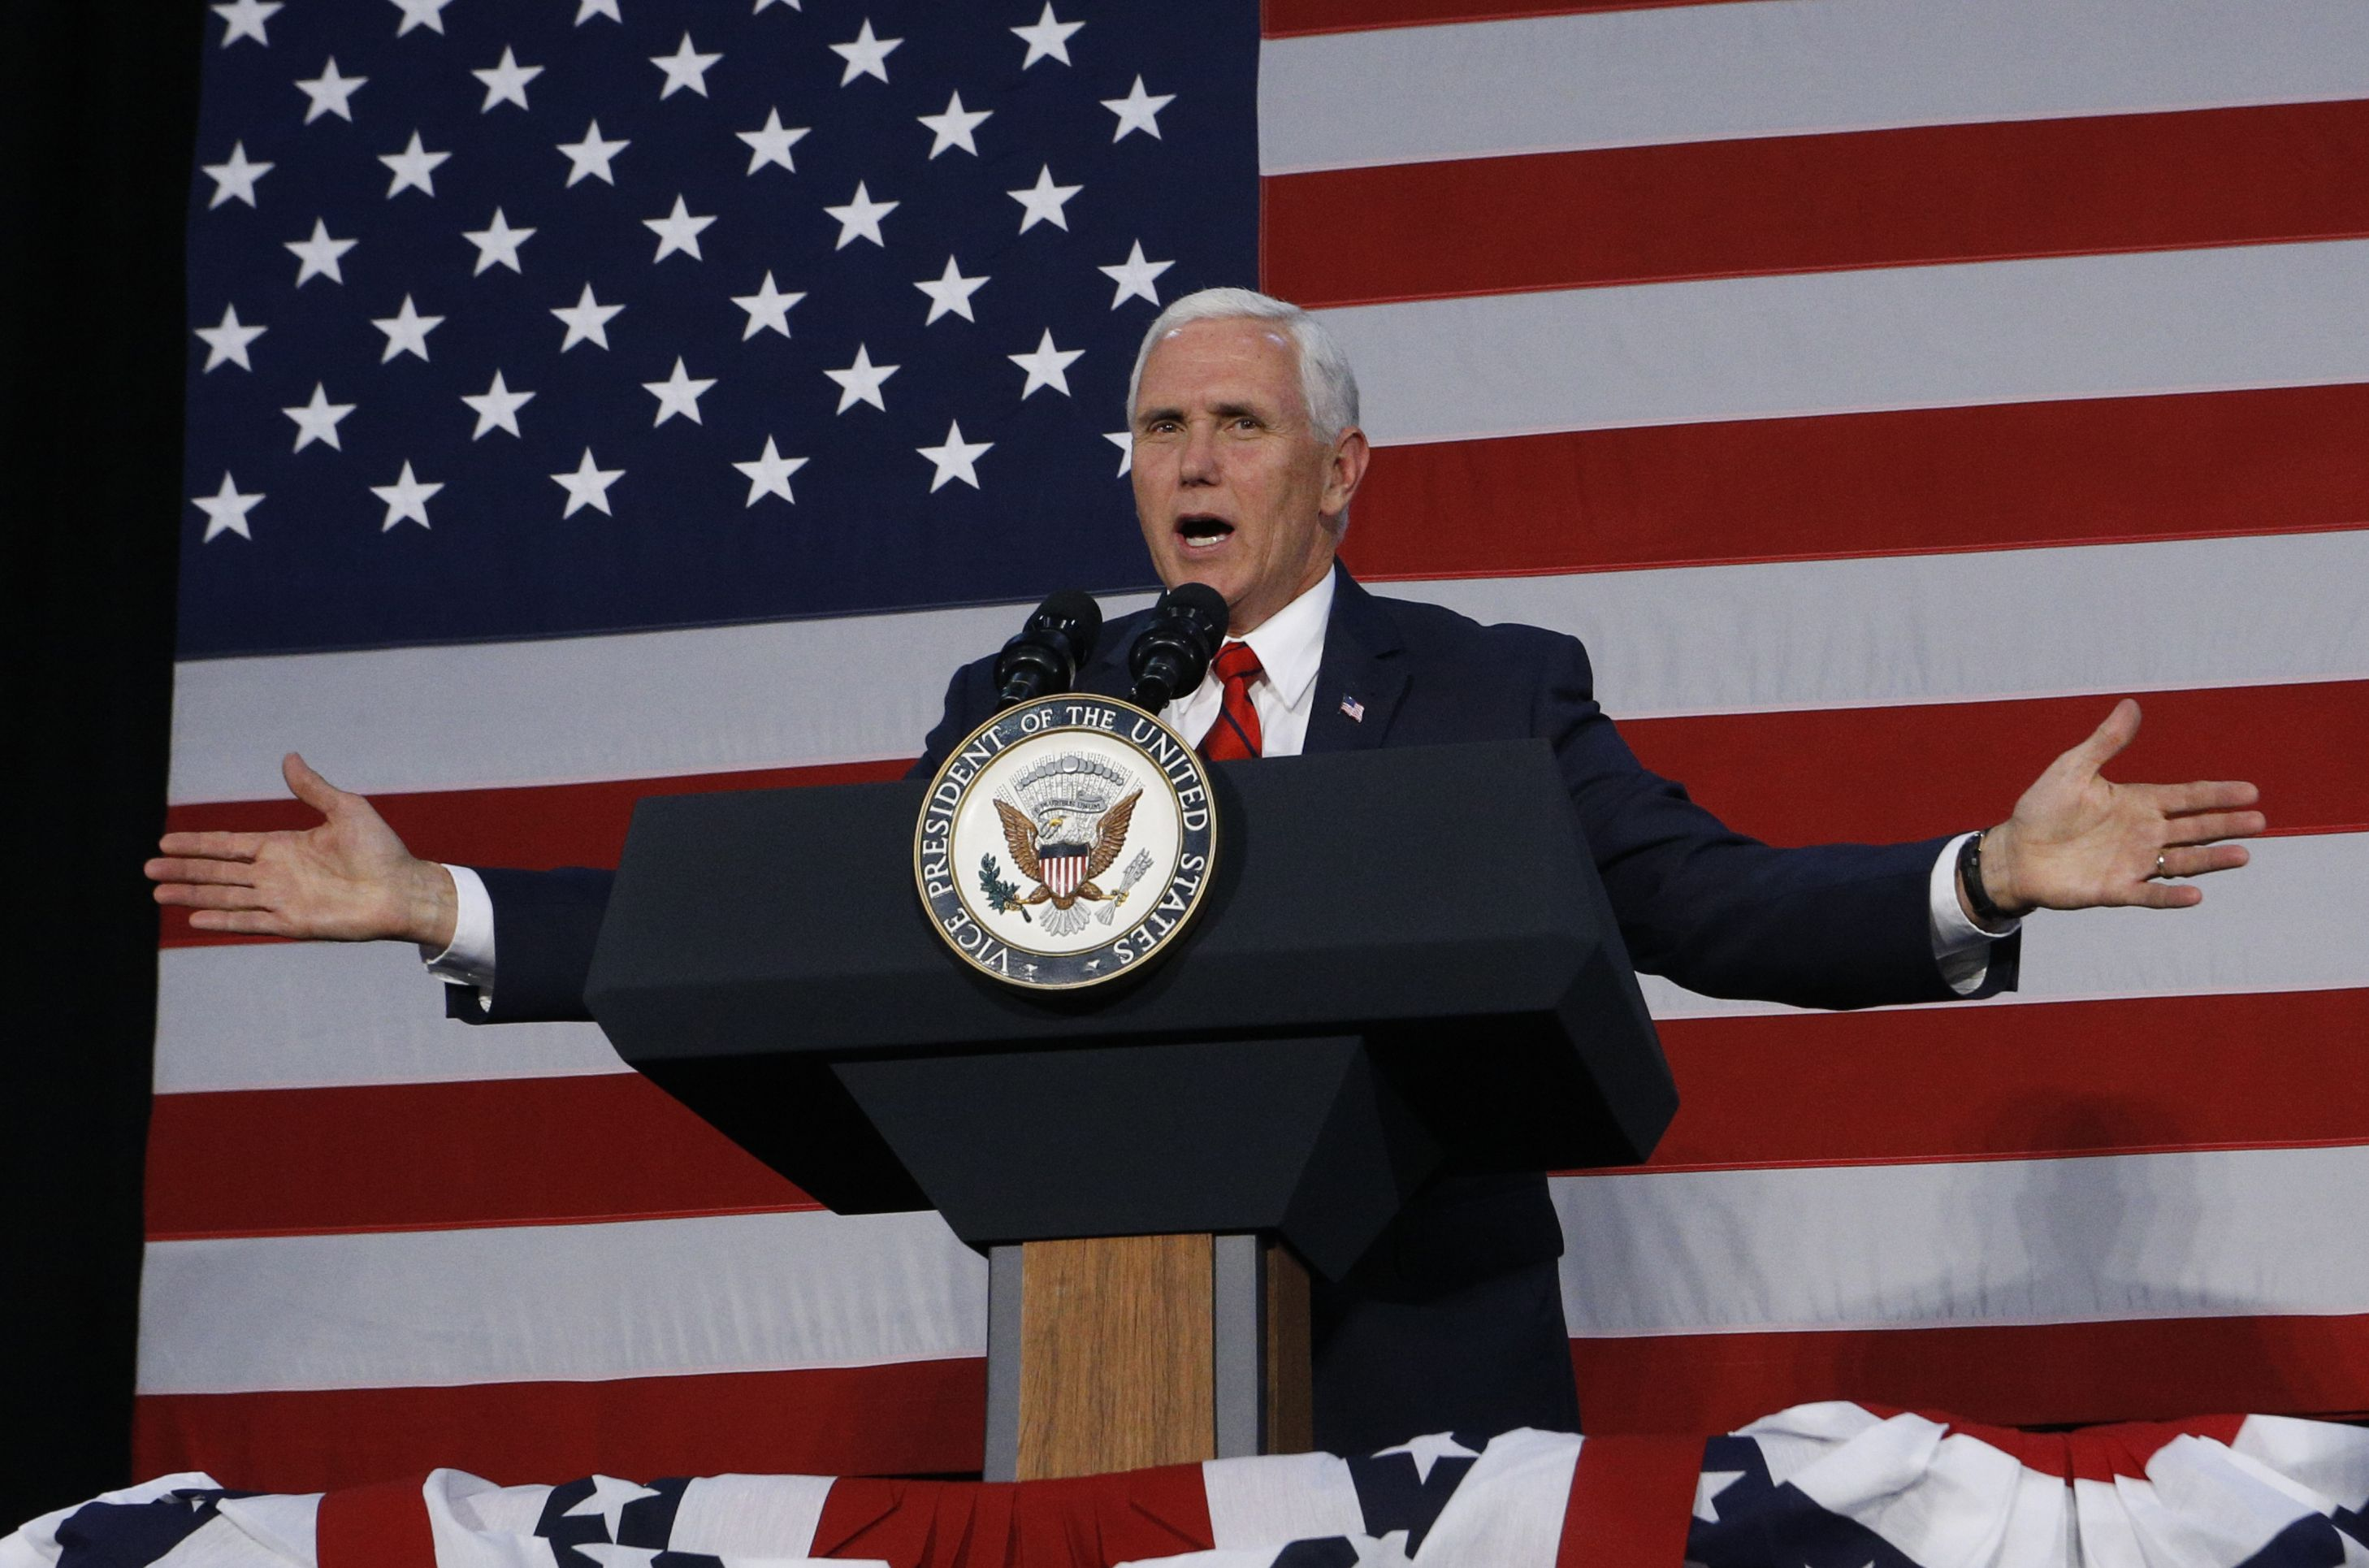 Mike Pence: A Bio of Vice President Mike Pence